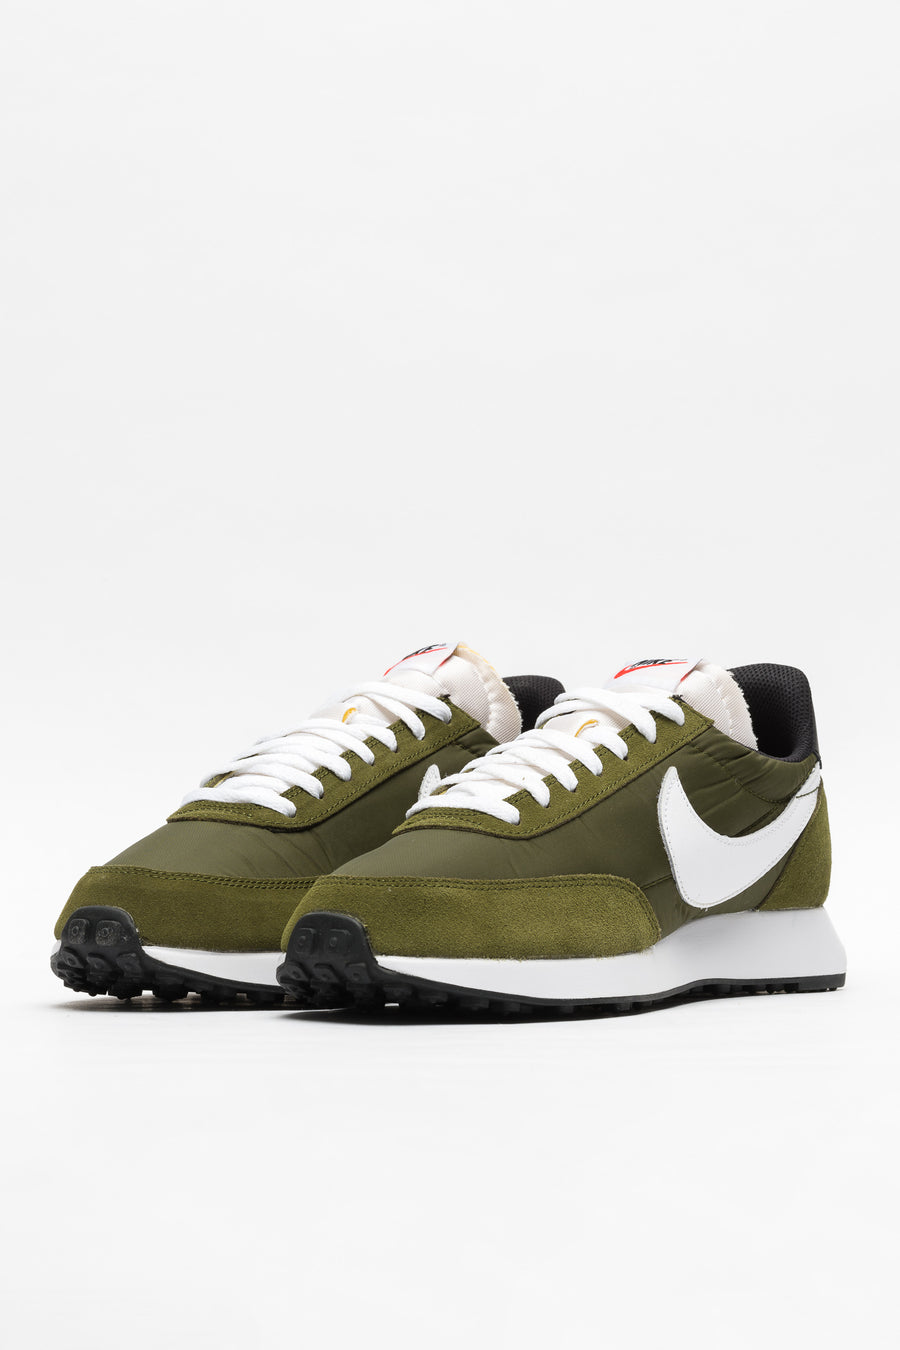 Nike Air Tailwind 79 in Legion Green/White - Notre